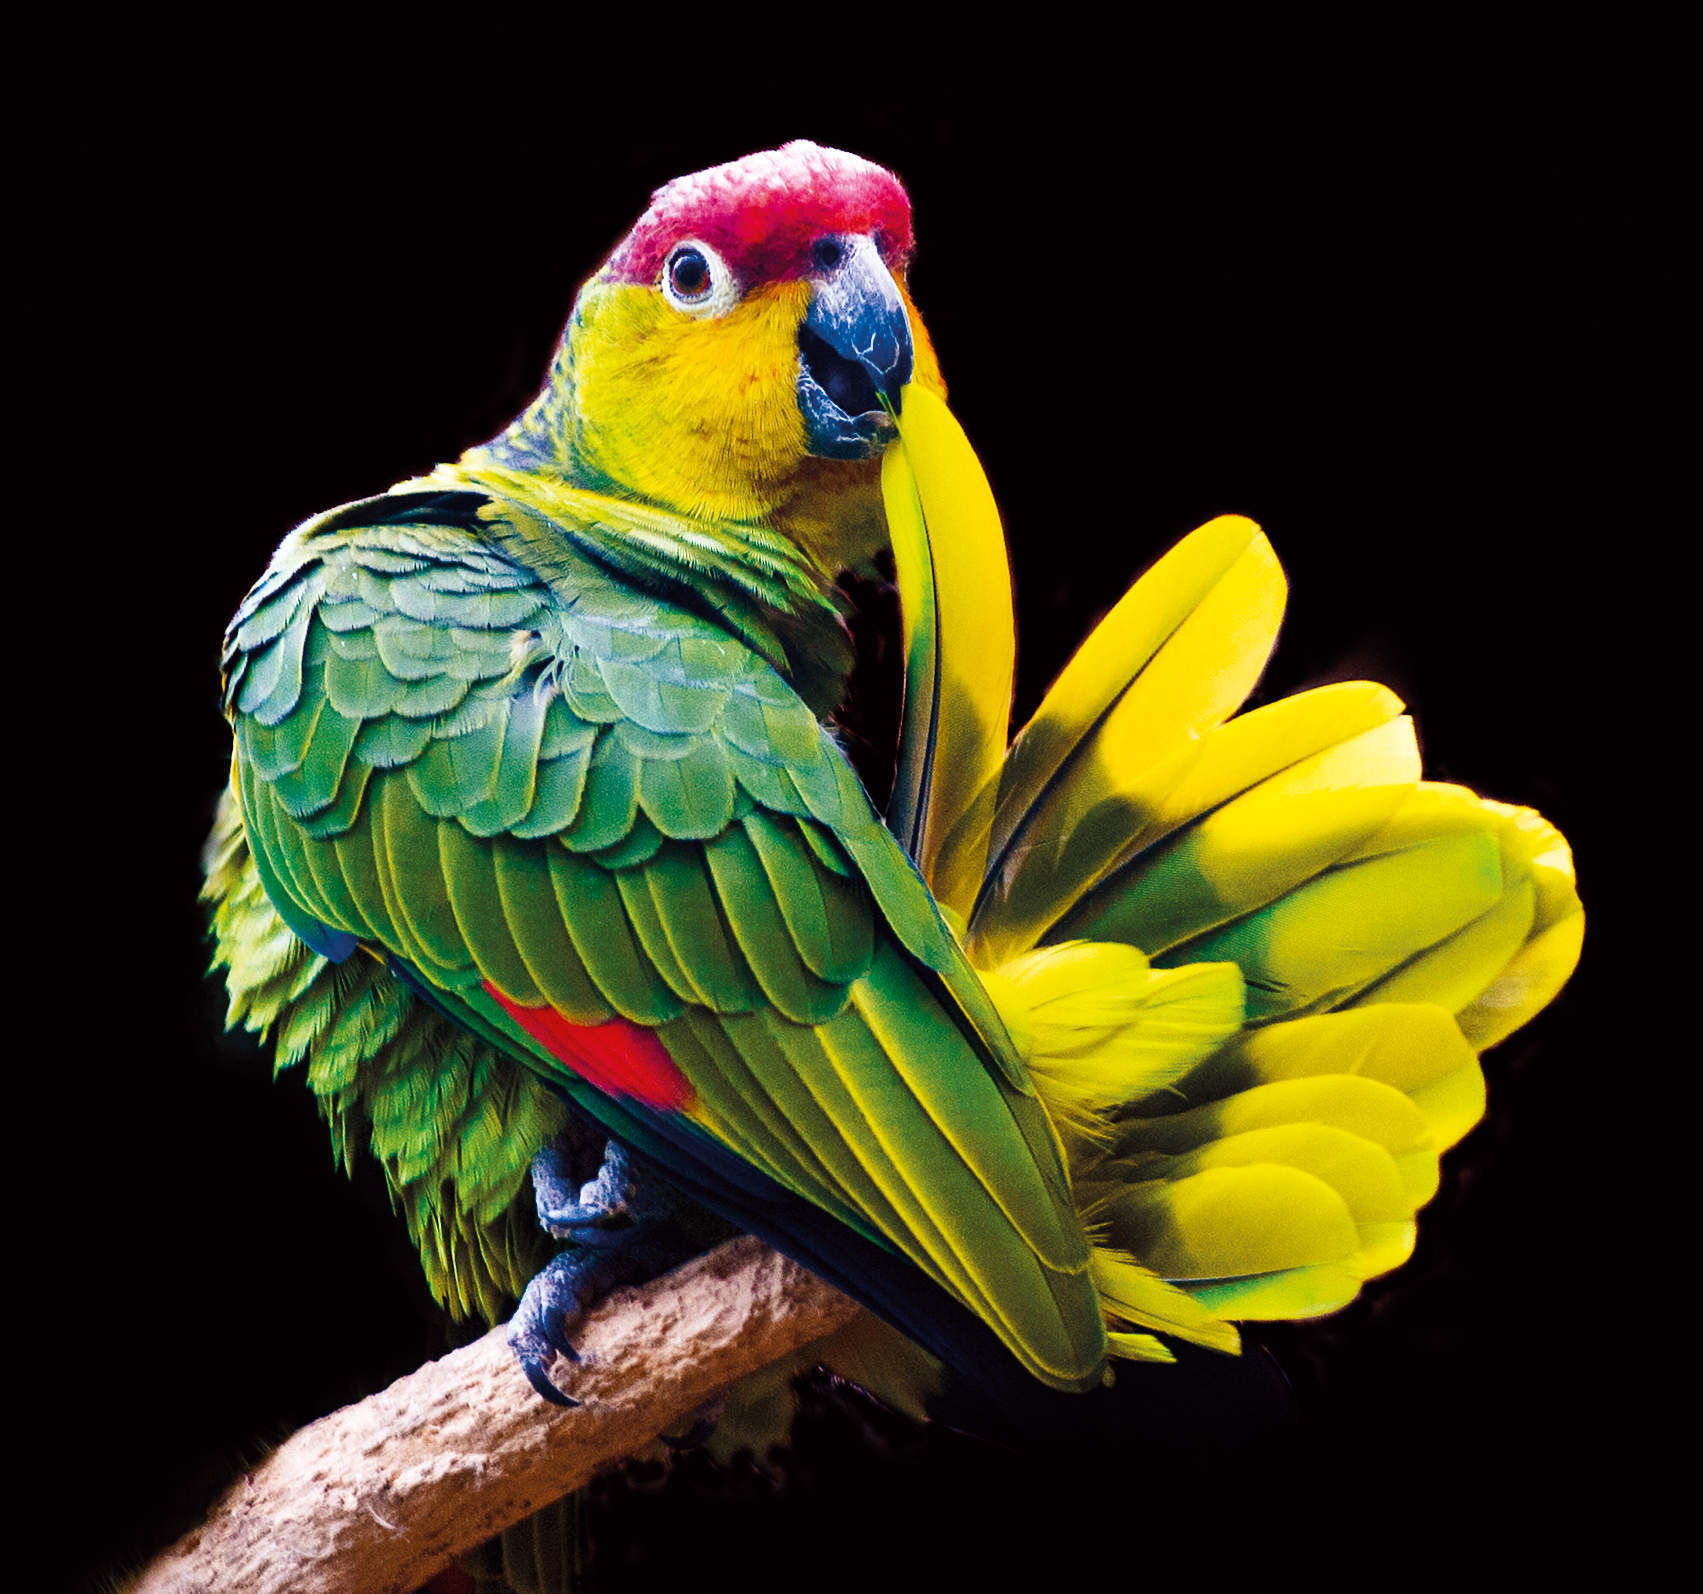 Imitation game: the parrot that learned to mimic a ringtone